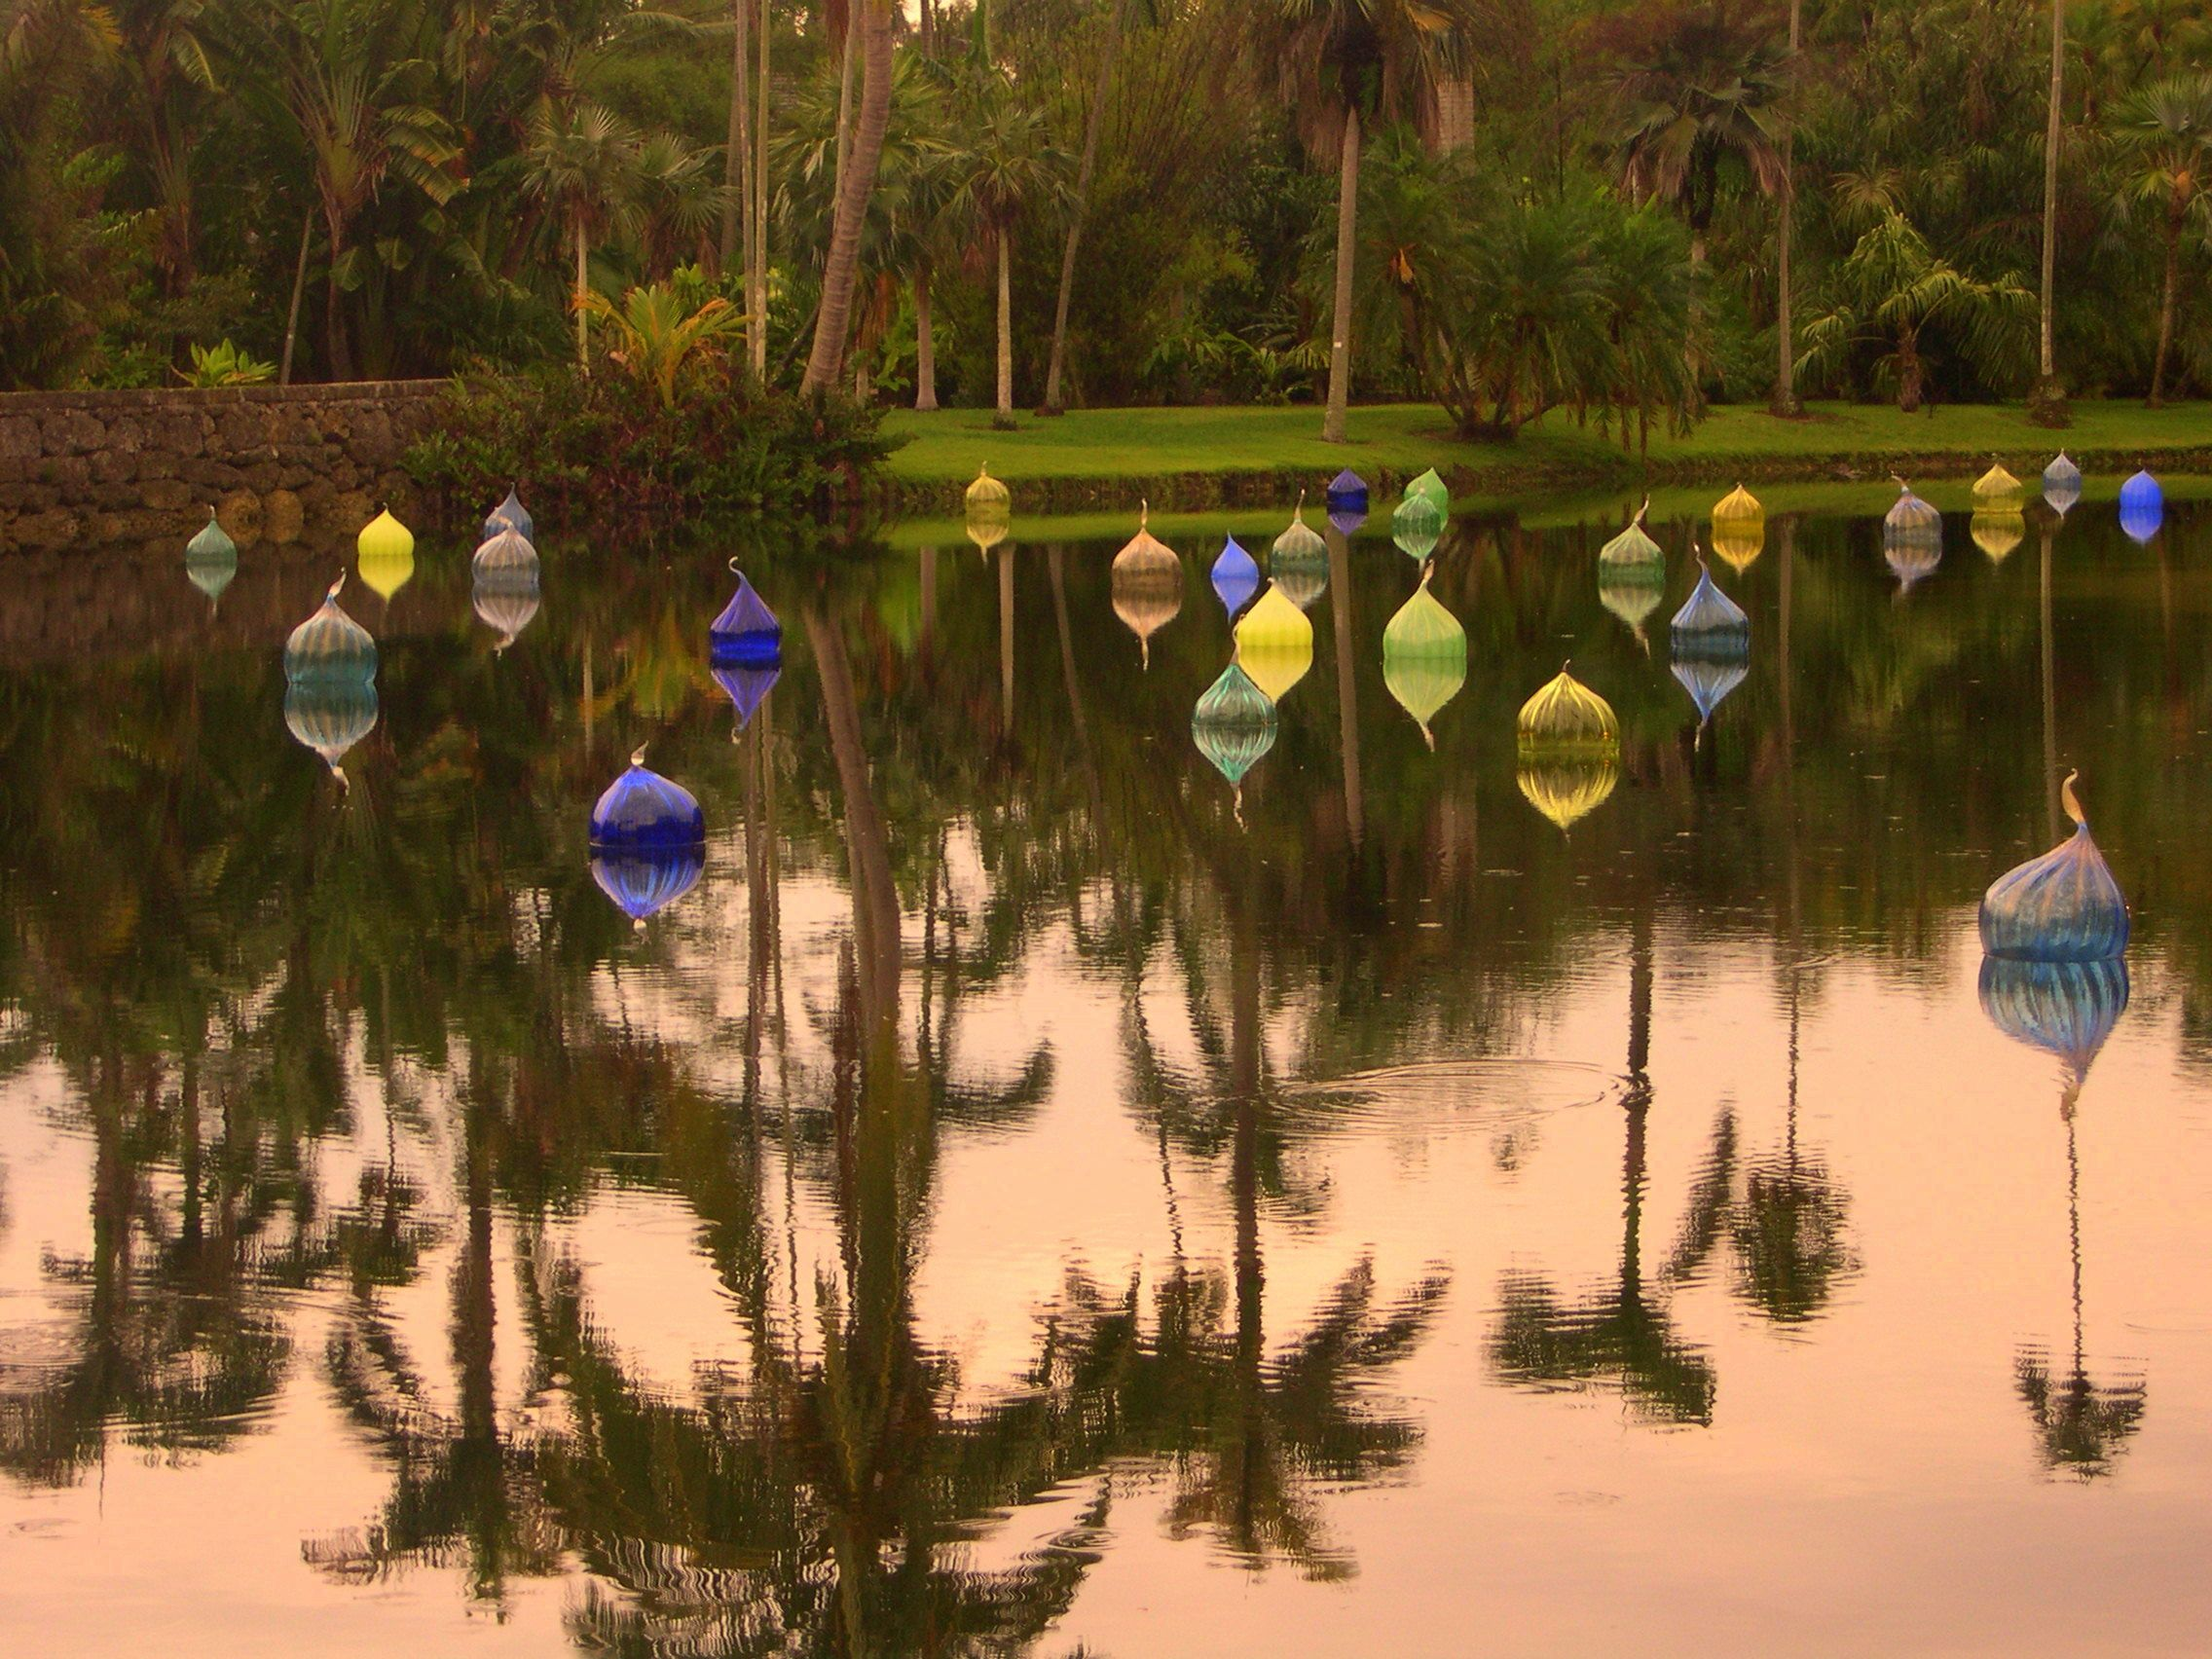 Chihuly globes floating in the Fairchild Botanical Garden | The ...